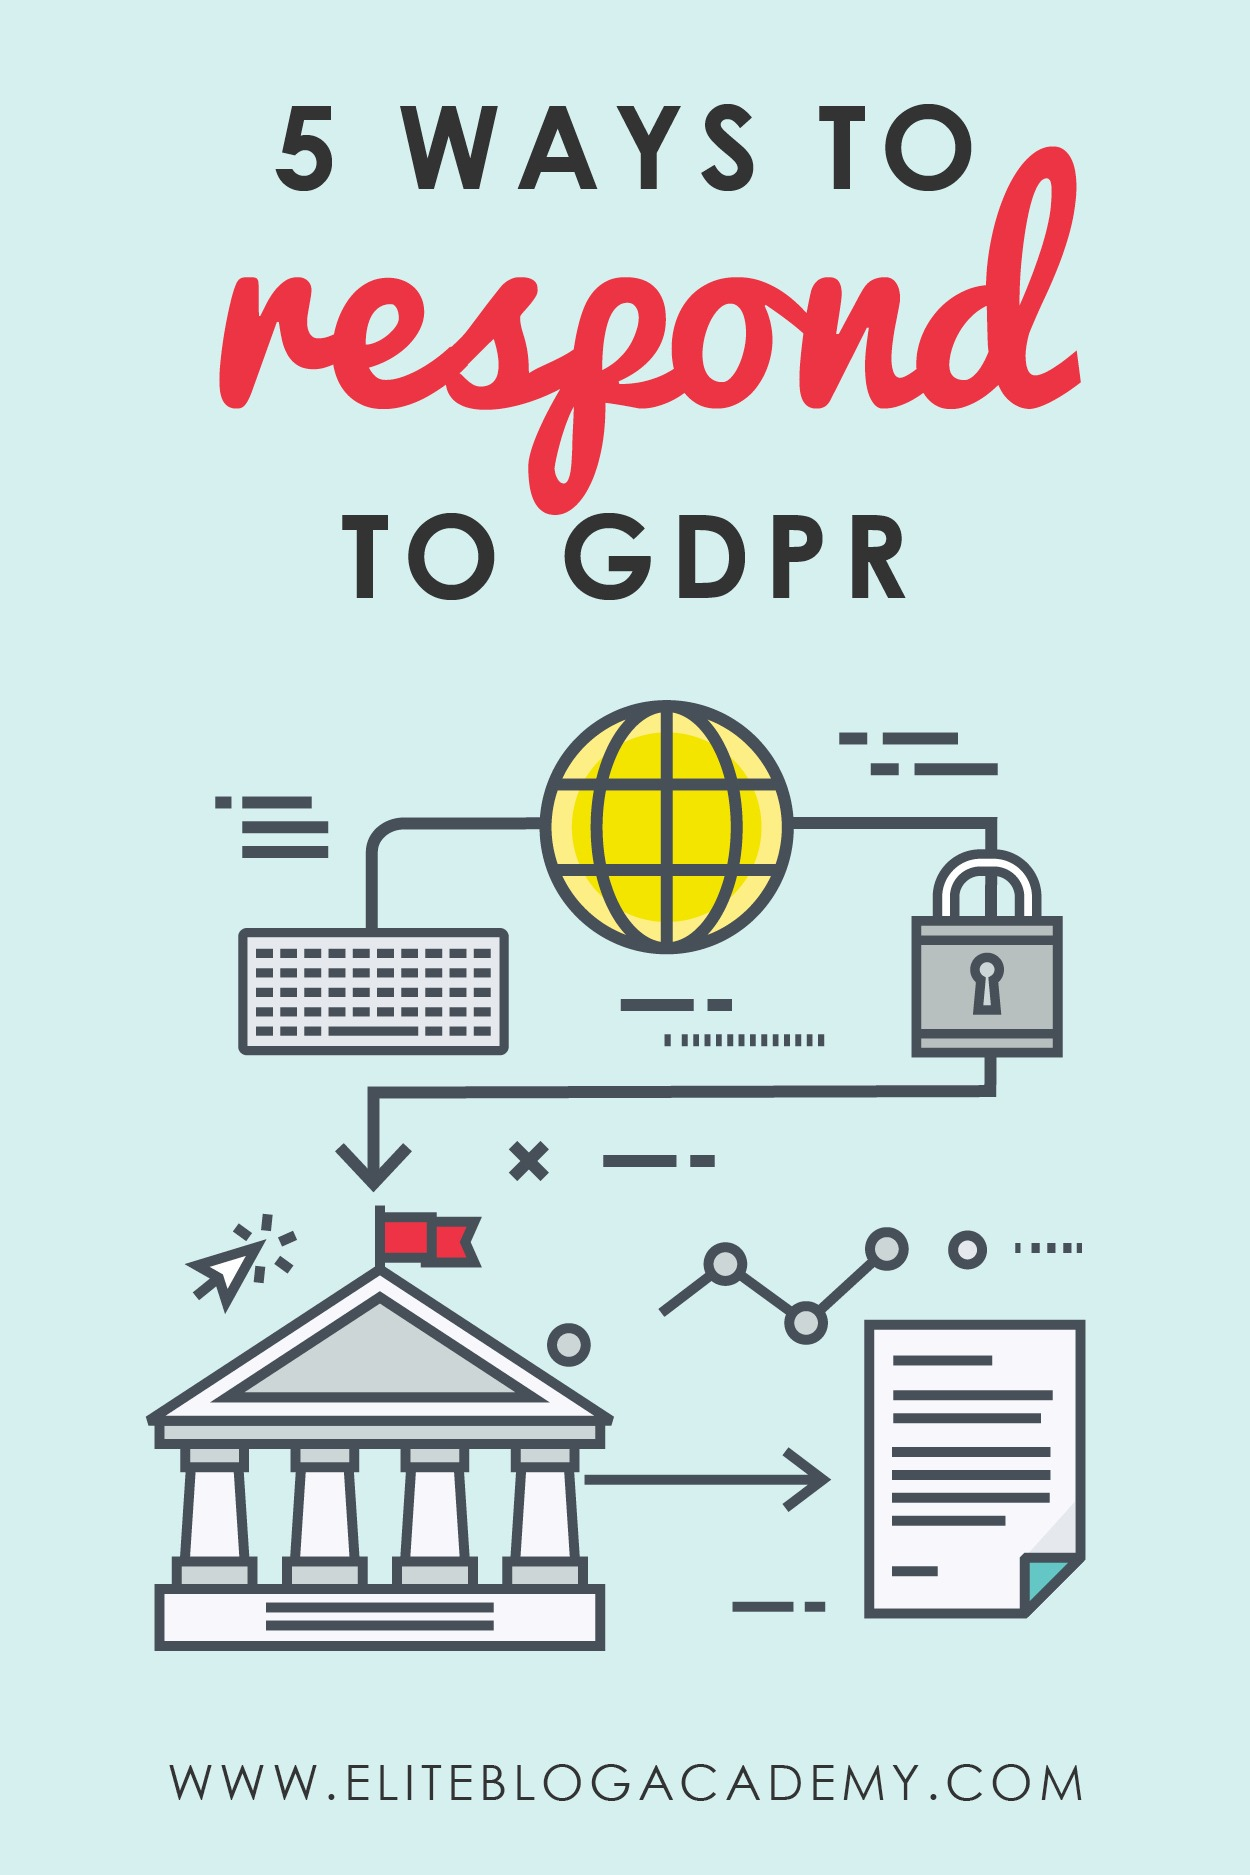 Stressed out over the new General Data Protection Regulation (or GDPR) legislation? It affects all of us as bloggers and online business owners! But don't panic! This post addresses how to respond to GDPR. #eliteblogacademy #GDPR #emailmarketing